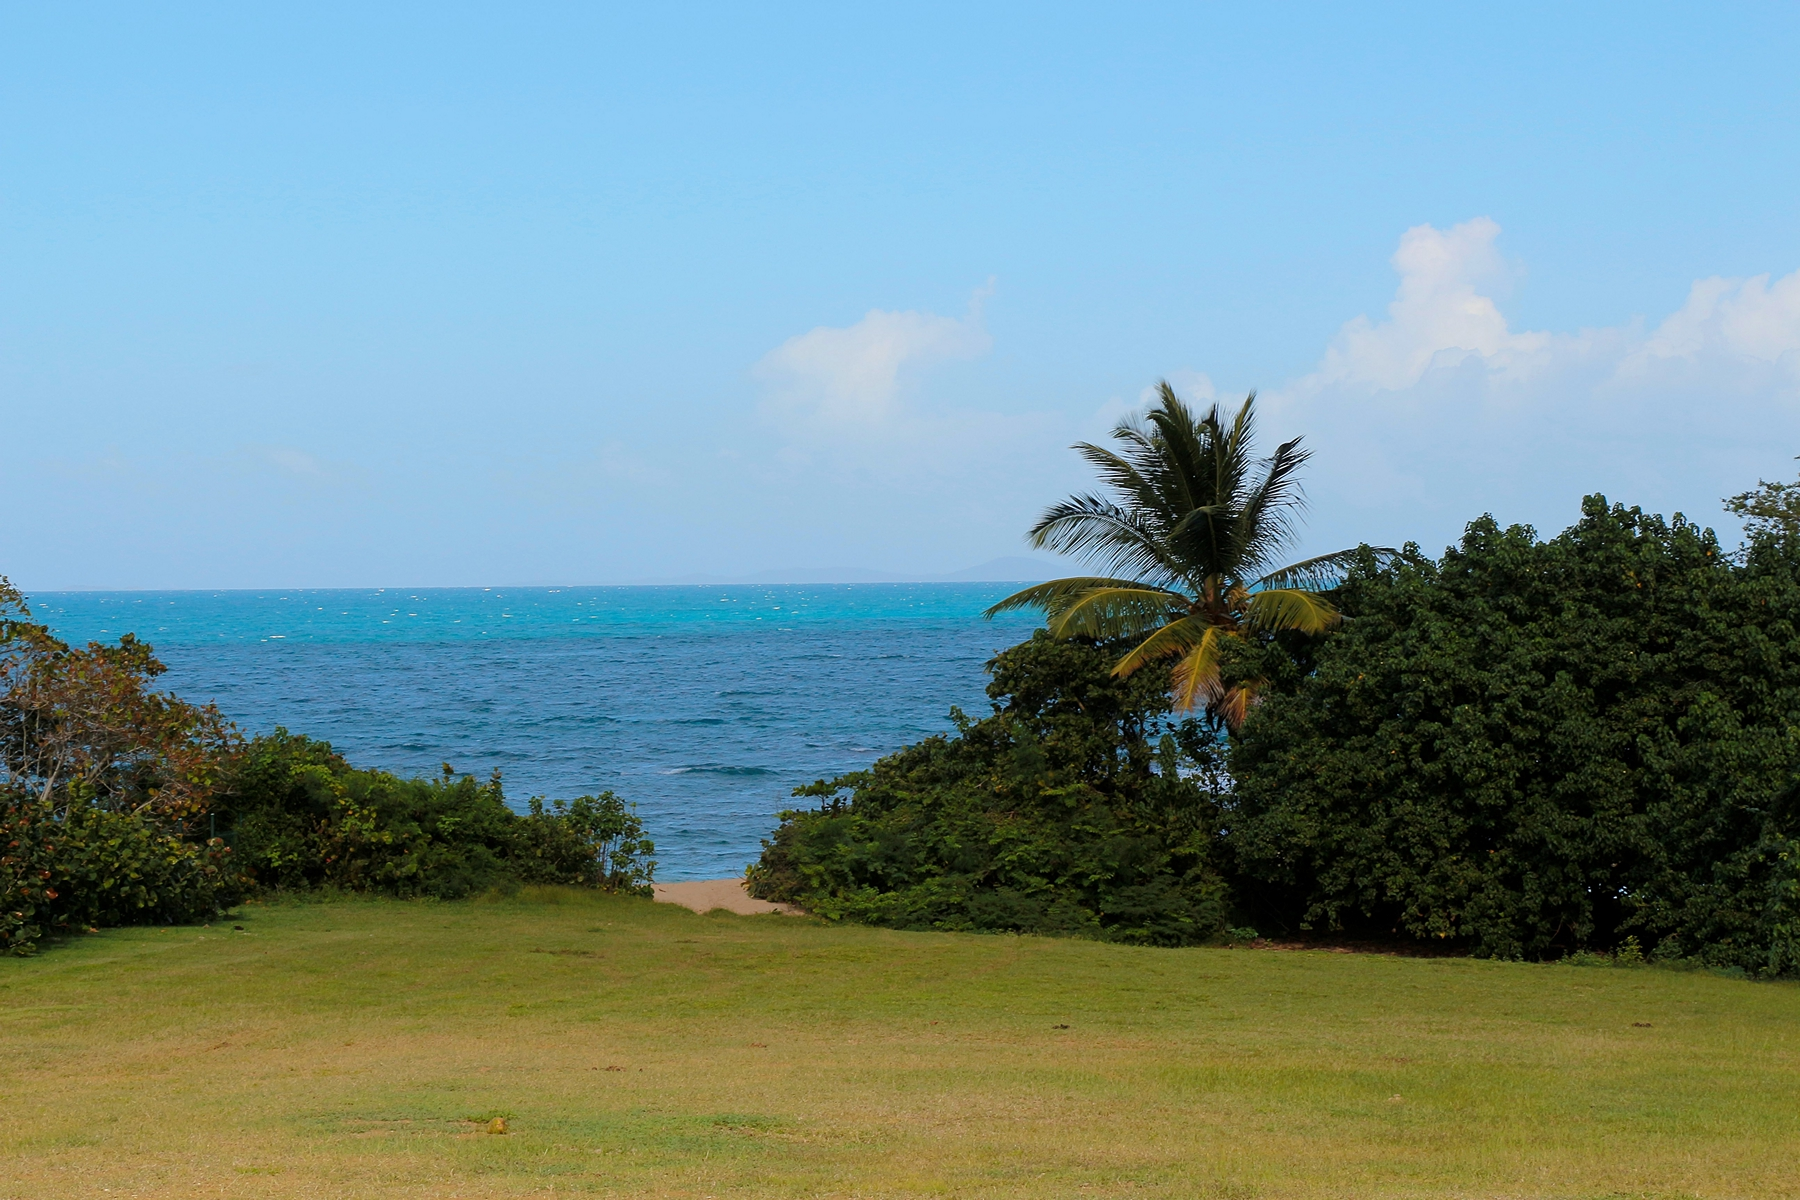 Additional photo for property listing at Architect Ready Beach Front lot, W Residences Lot 9 W Hotel Private Residences Vieques, Puerto Rico 00765 푸에르토리코